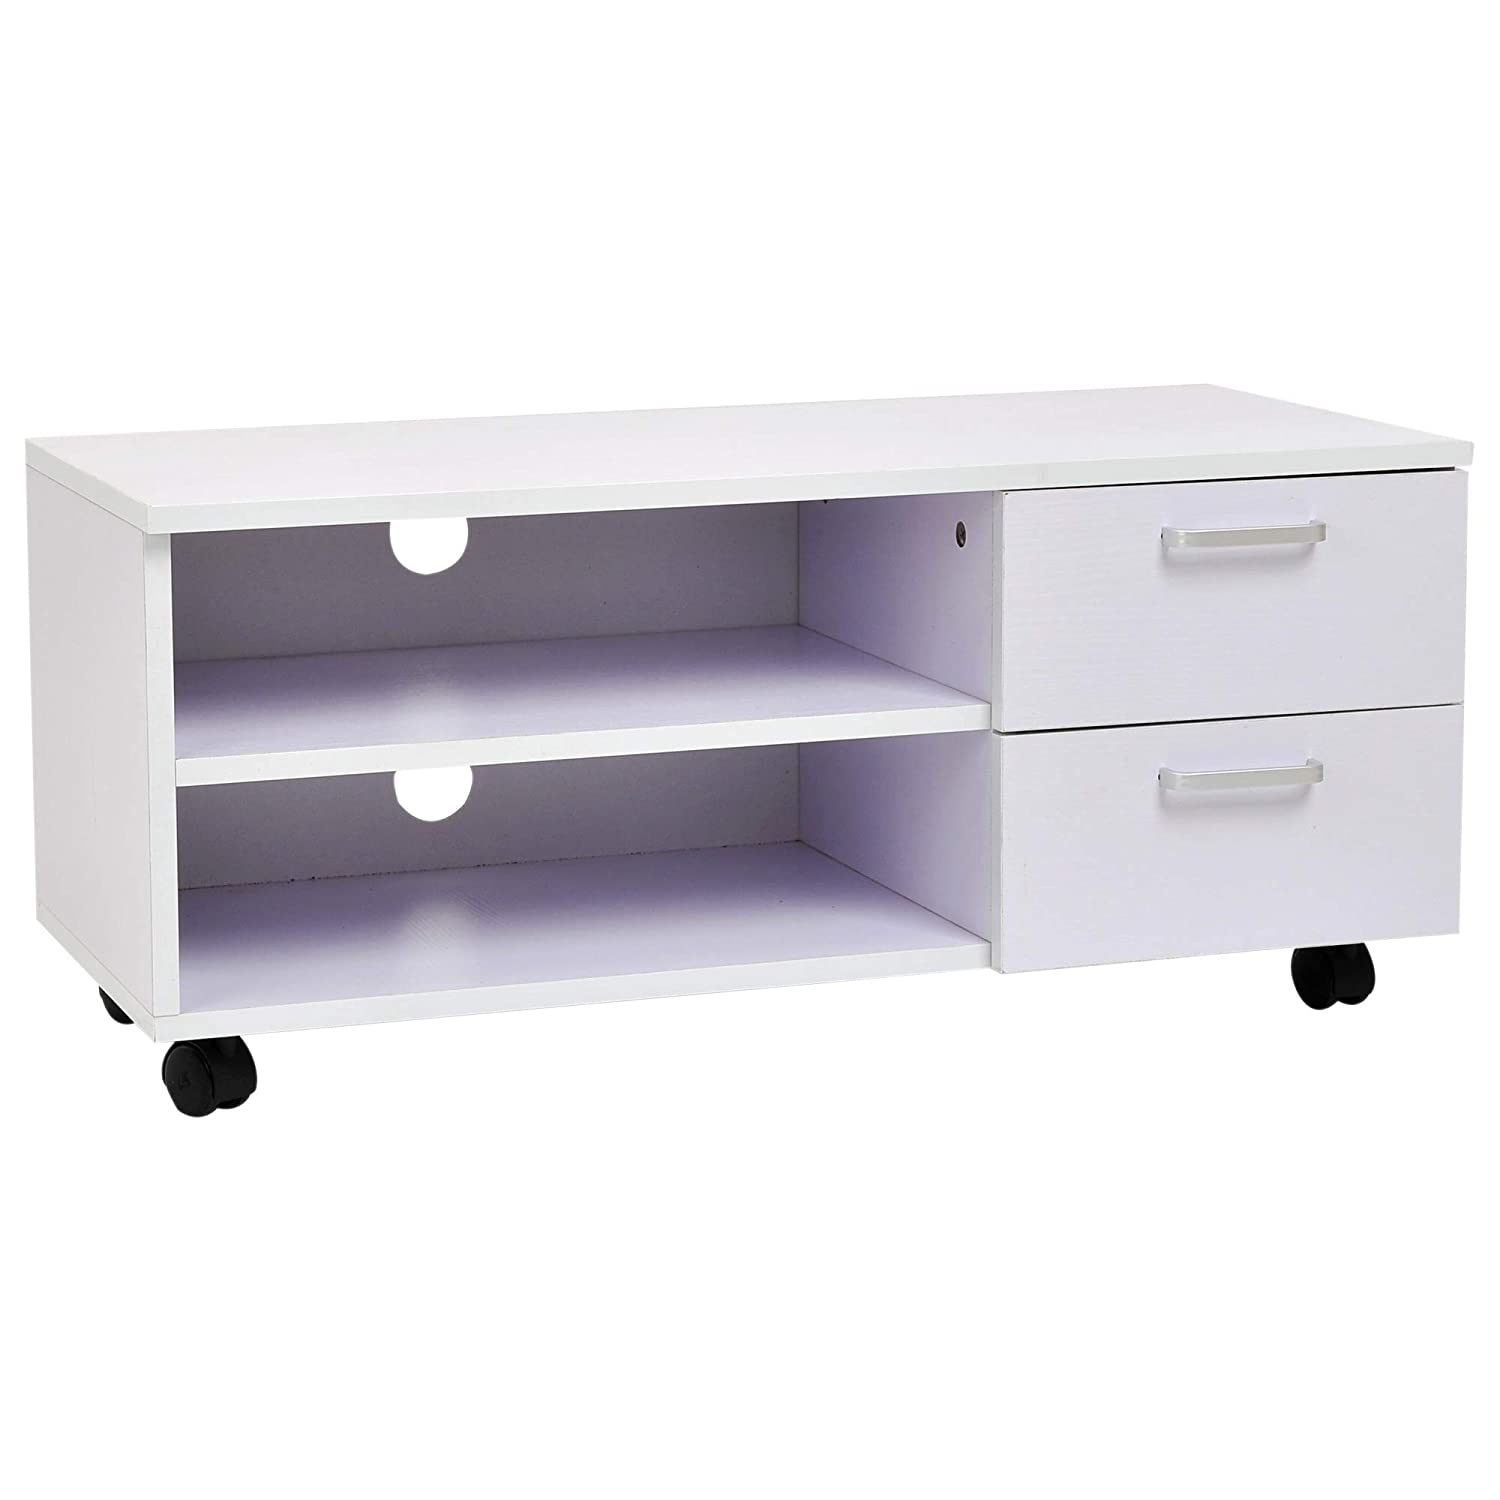 HOMCOM Wooden Mobile TV Stand Cabinet Media Center Storage Console with Drawers 2-tier Shelf White Sold by MHSTAR